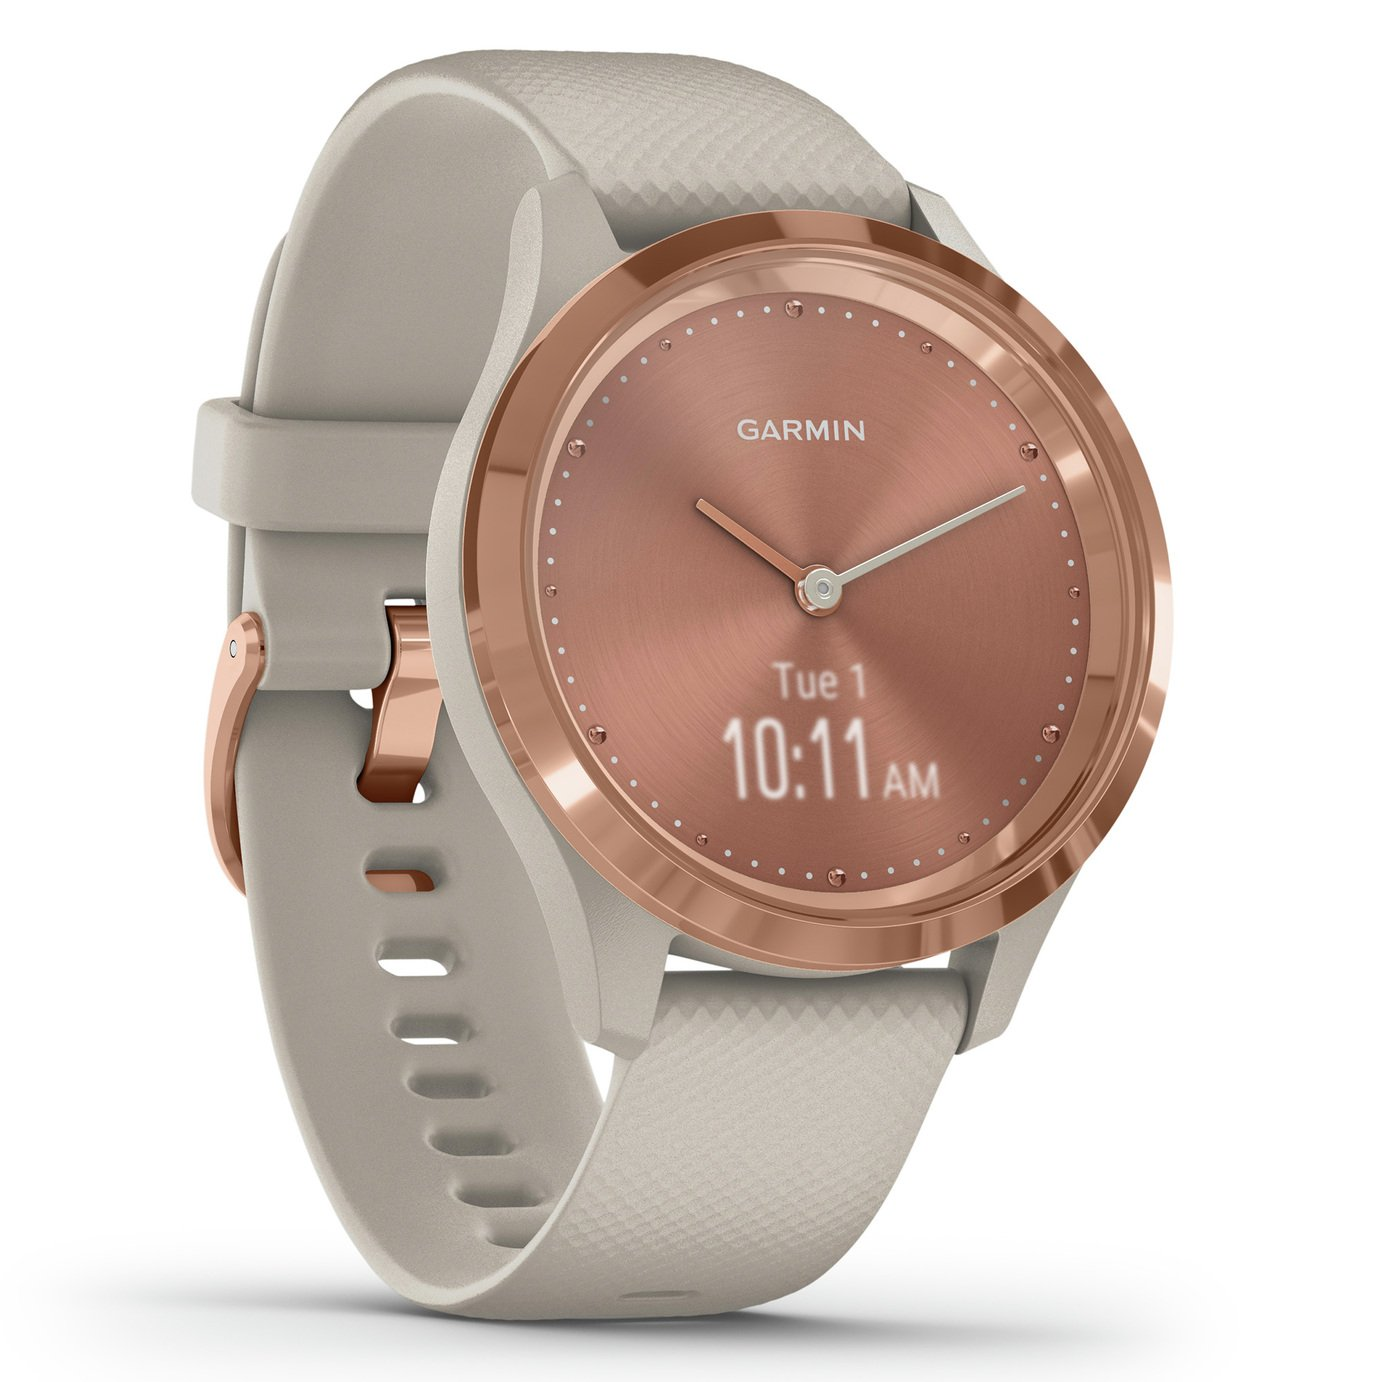 Garmin Vivomove 3S Smart Watch - Rose Gold/ Light Sand